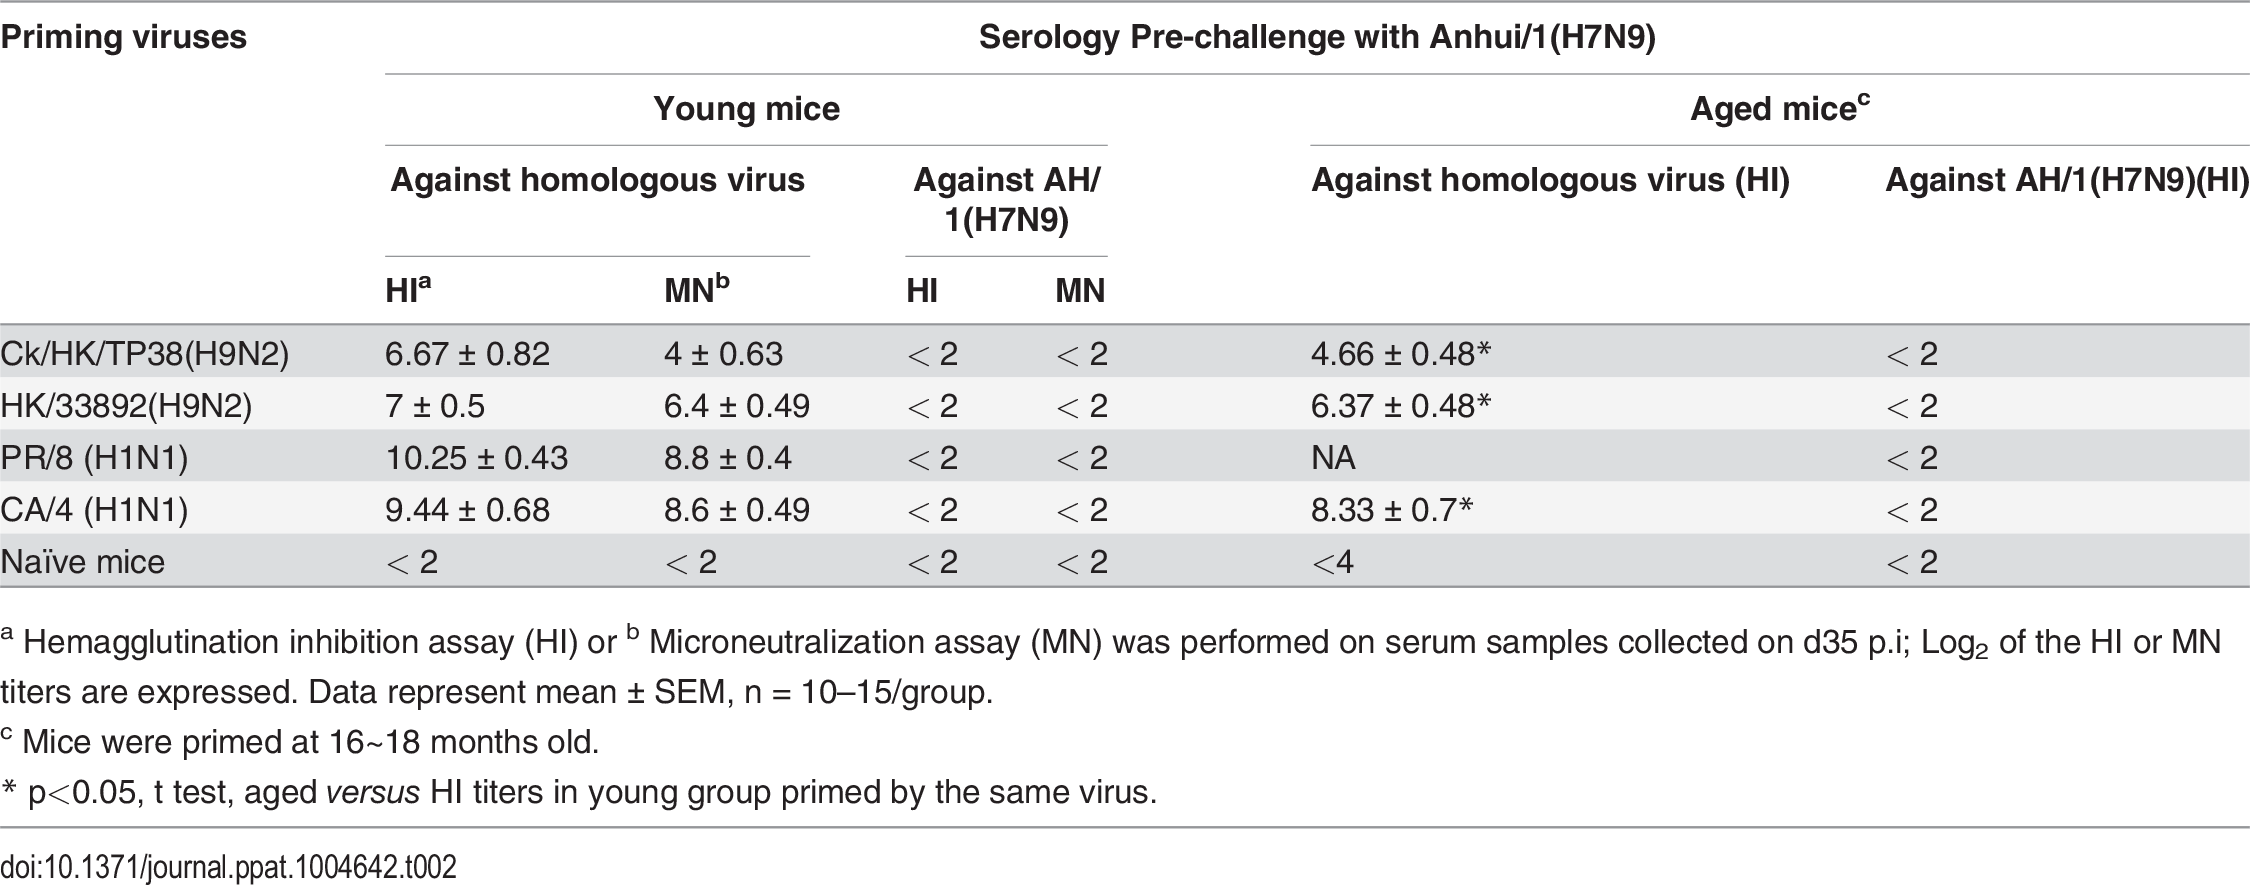 Serologic testing of mice primed with different viruses.